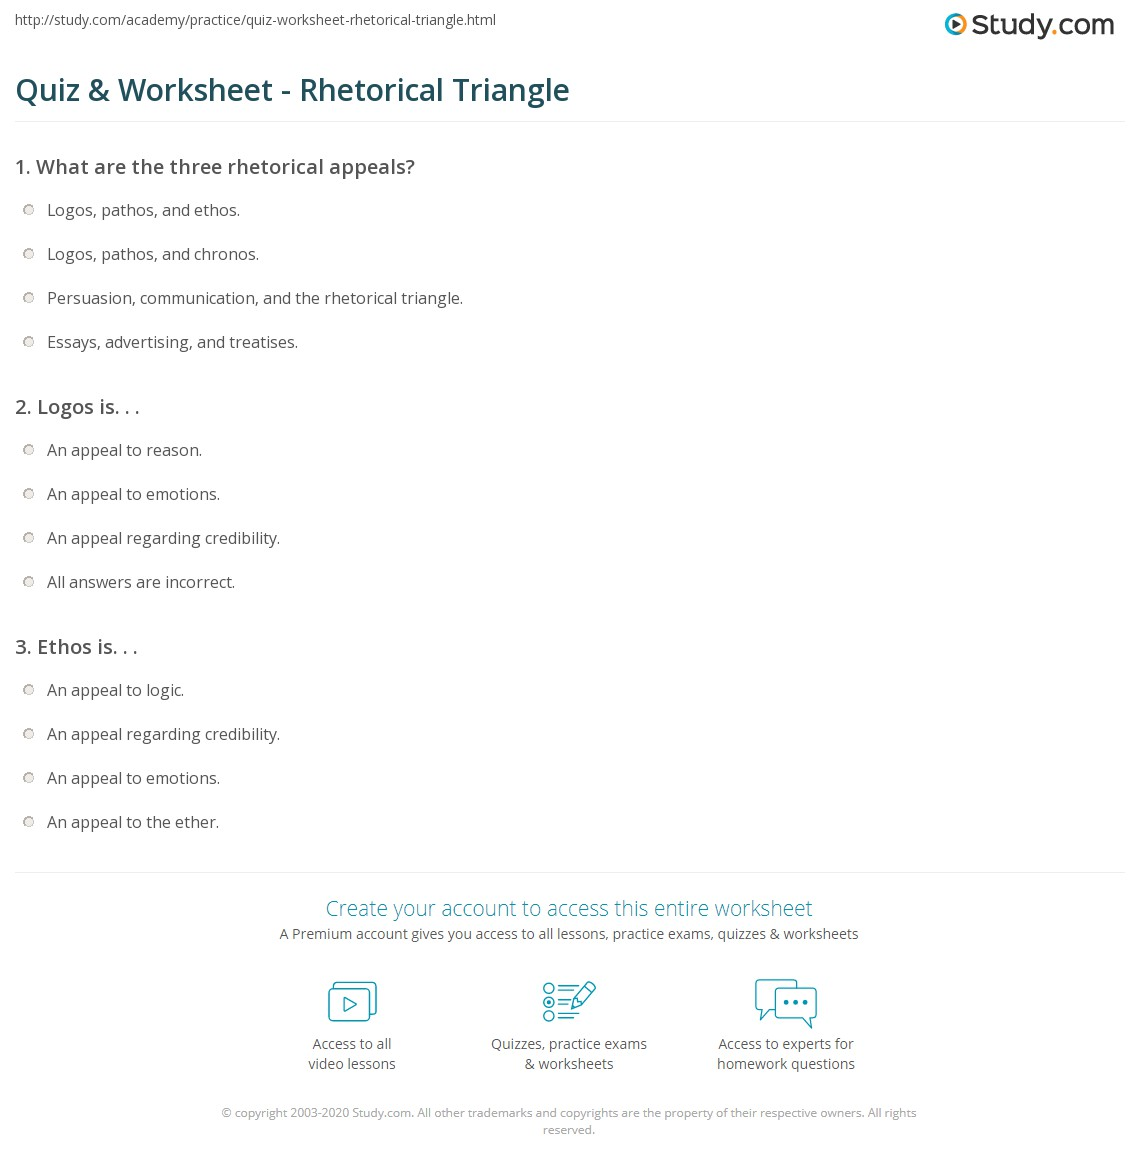 quiz worksheet rhetorical triangle. Black Bedroom Furniture Sets. Home Design Ideas